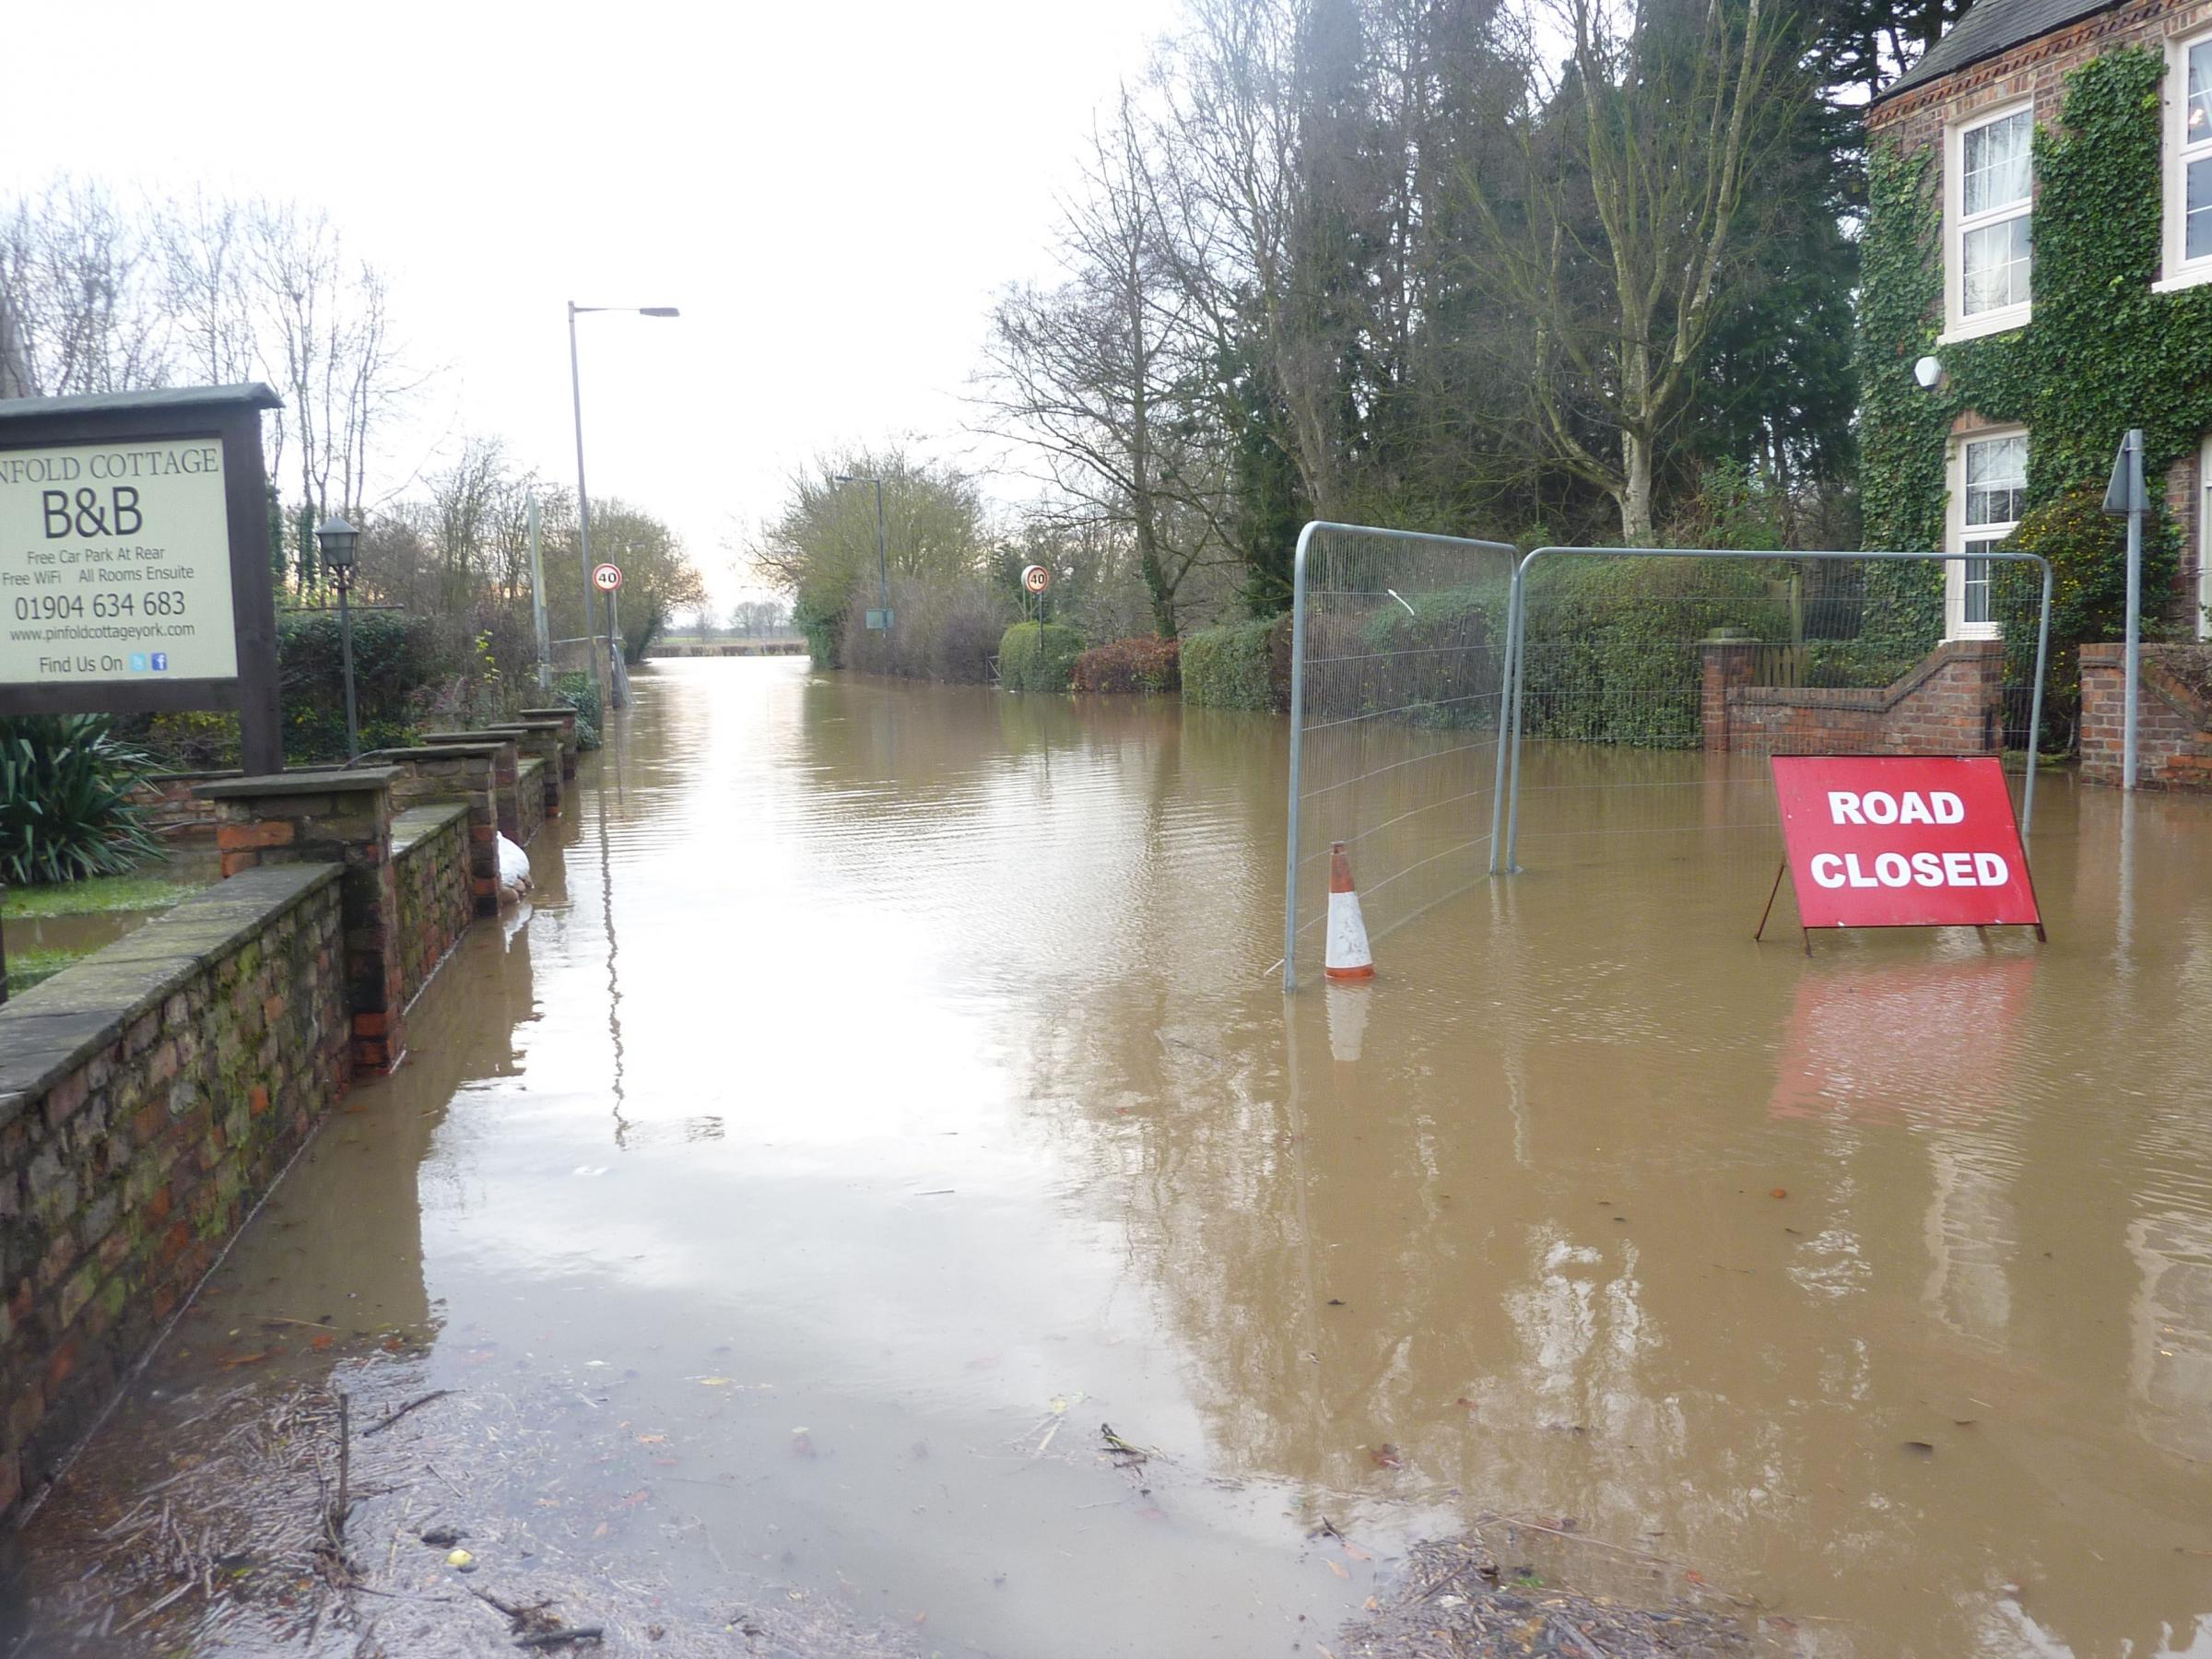 City of York Council needs to address flooding issues on A19